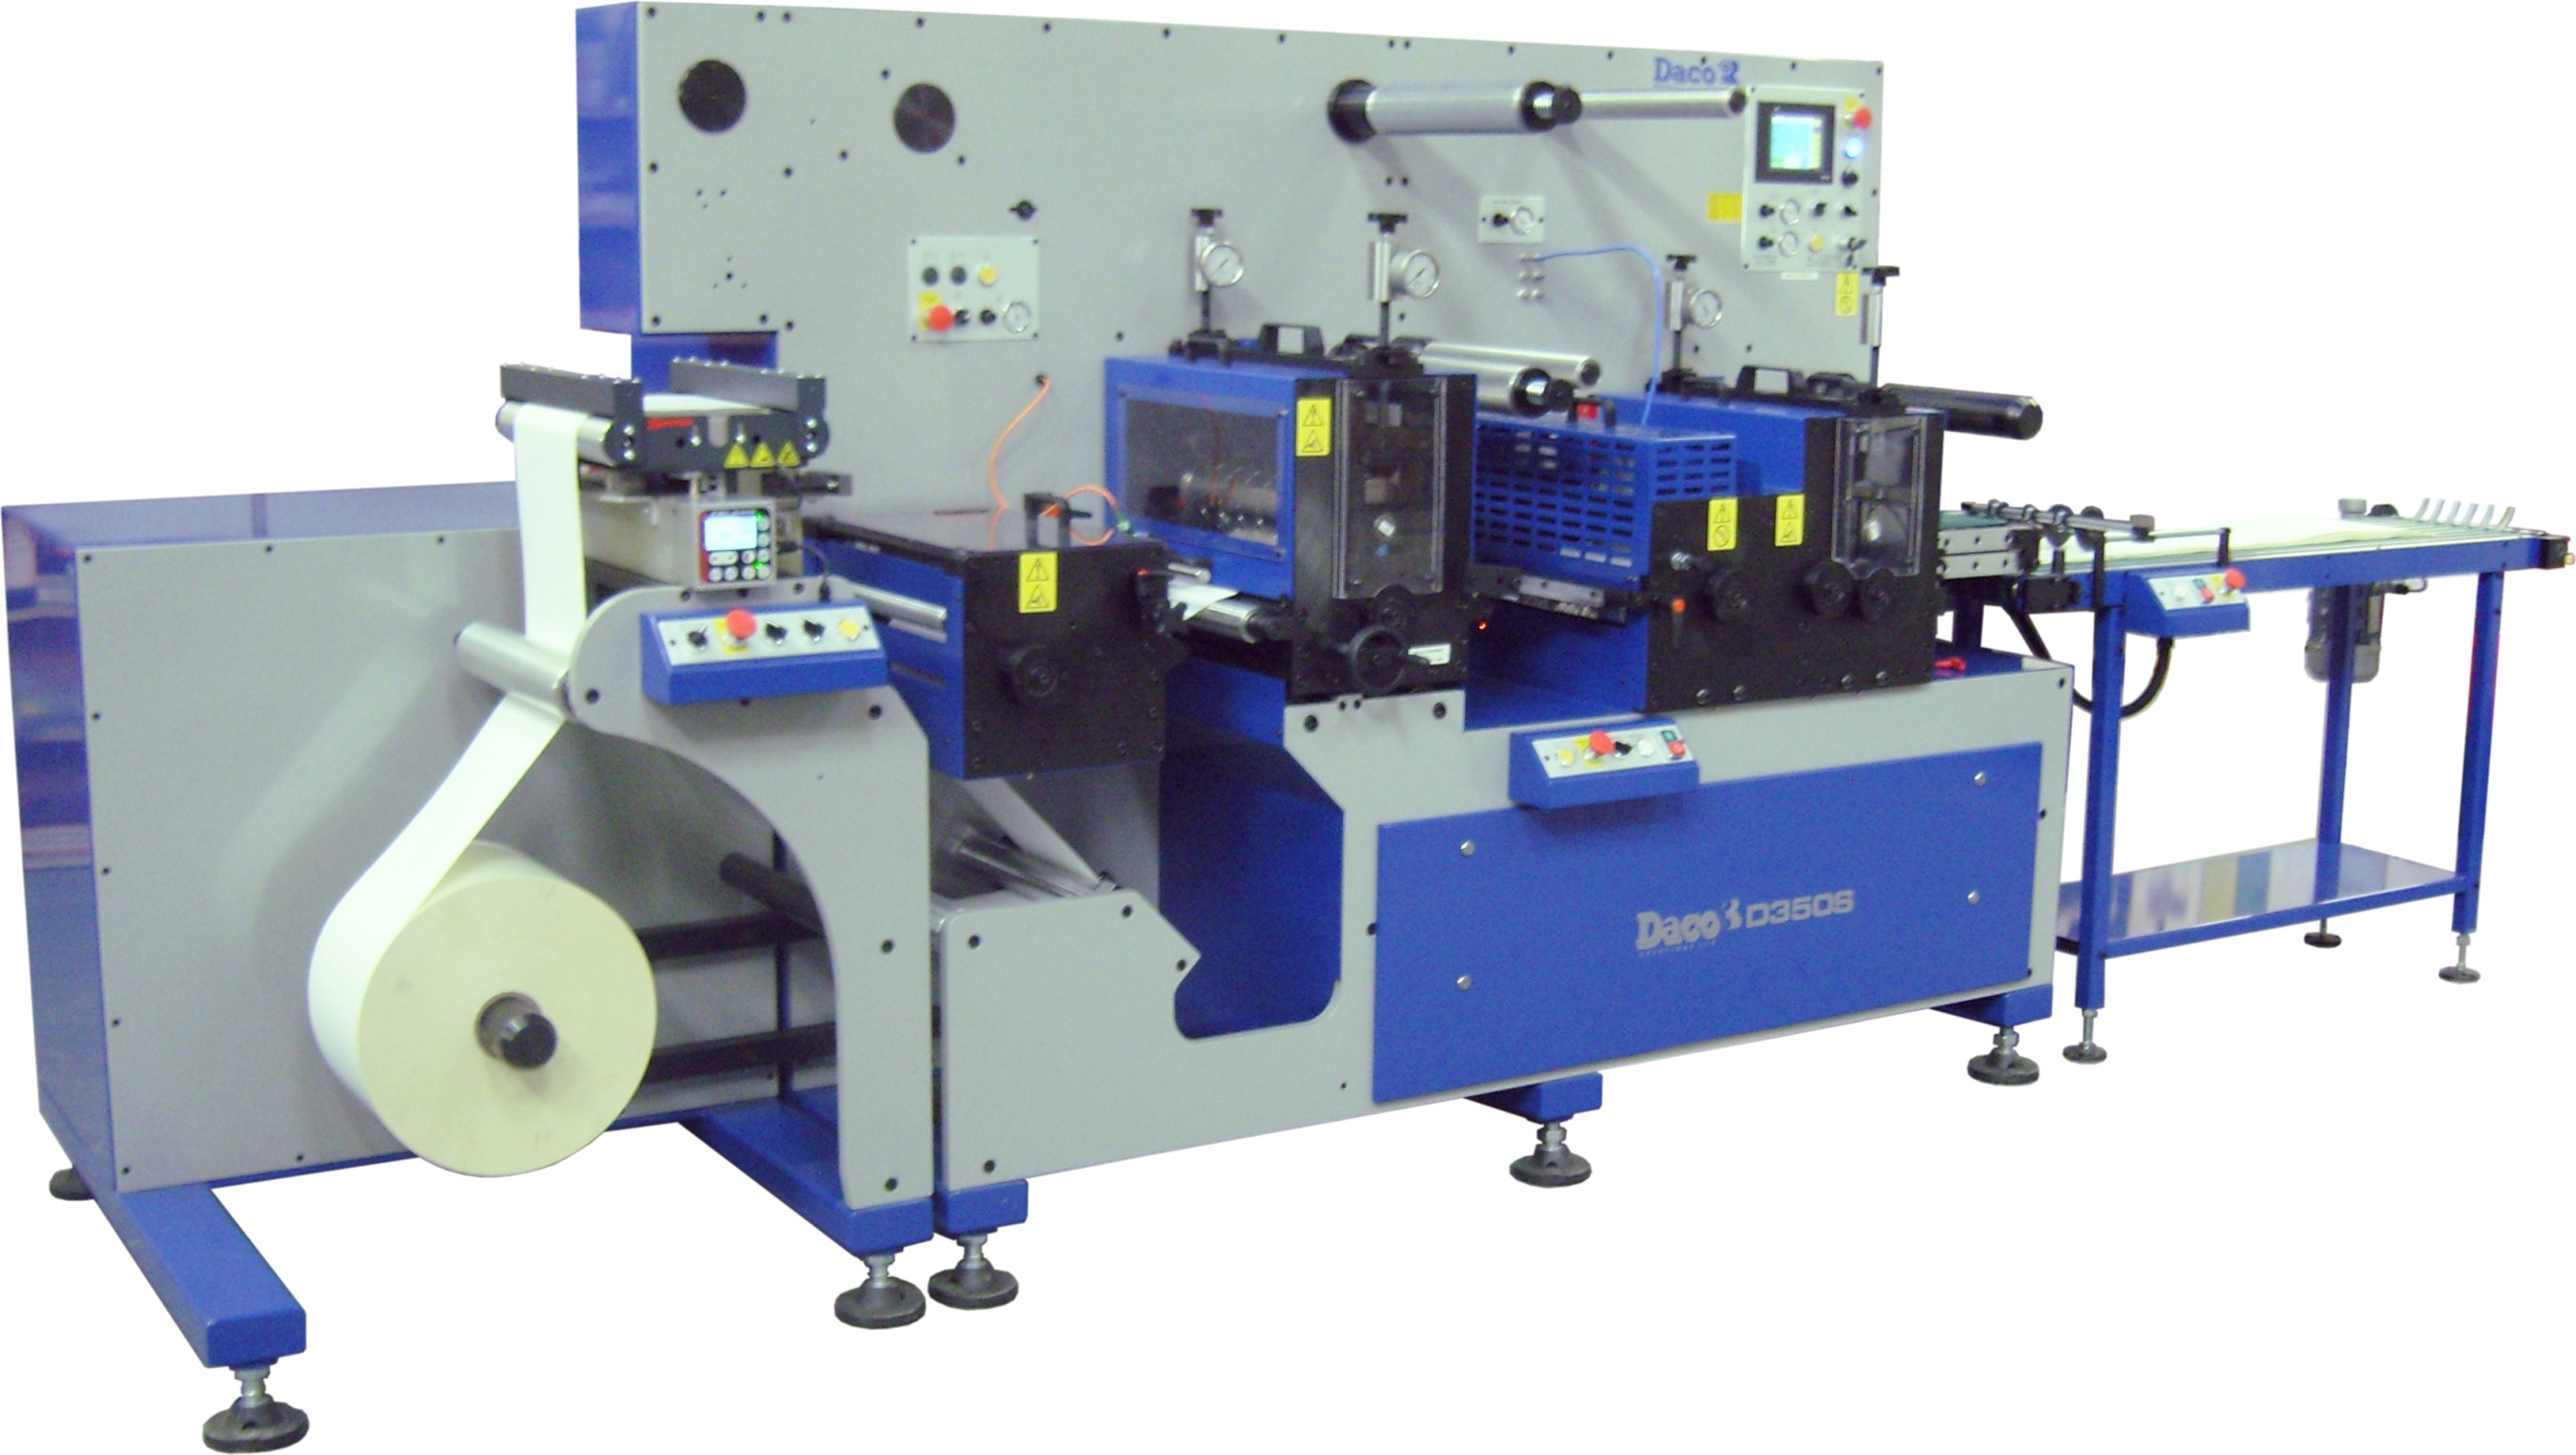 Daco D350S A3/ A4 sheeting line for the prodcution of laser labels